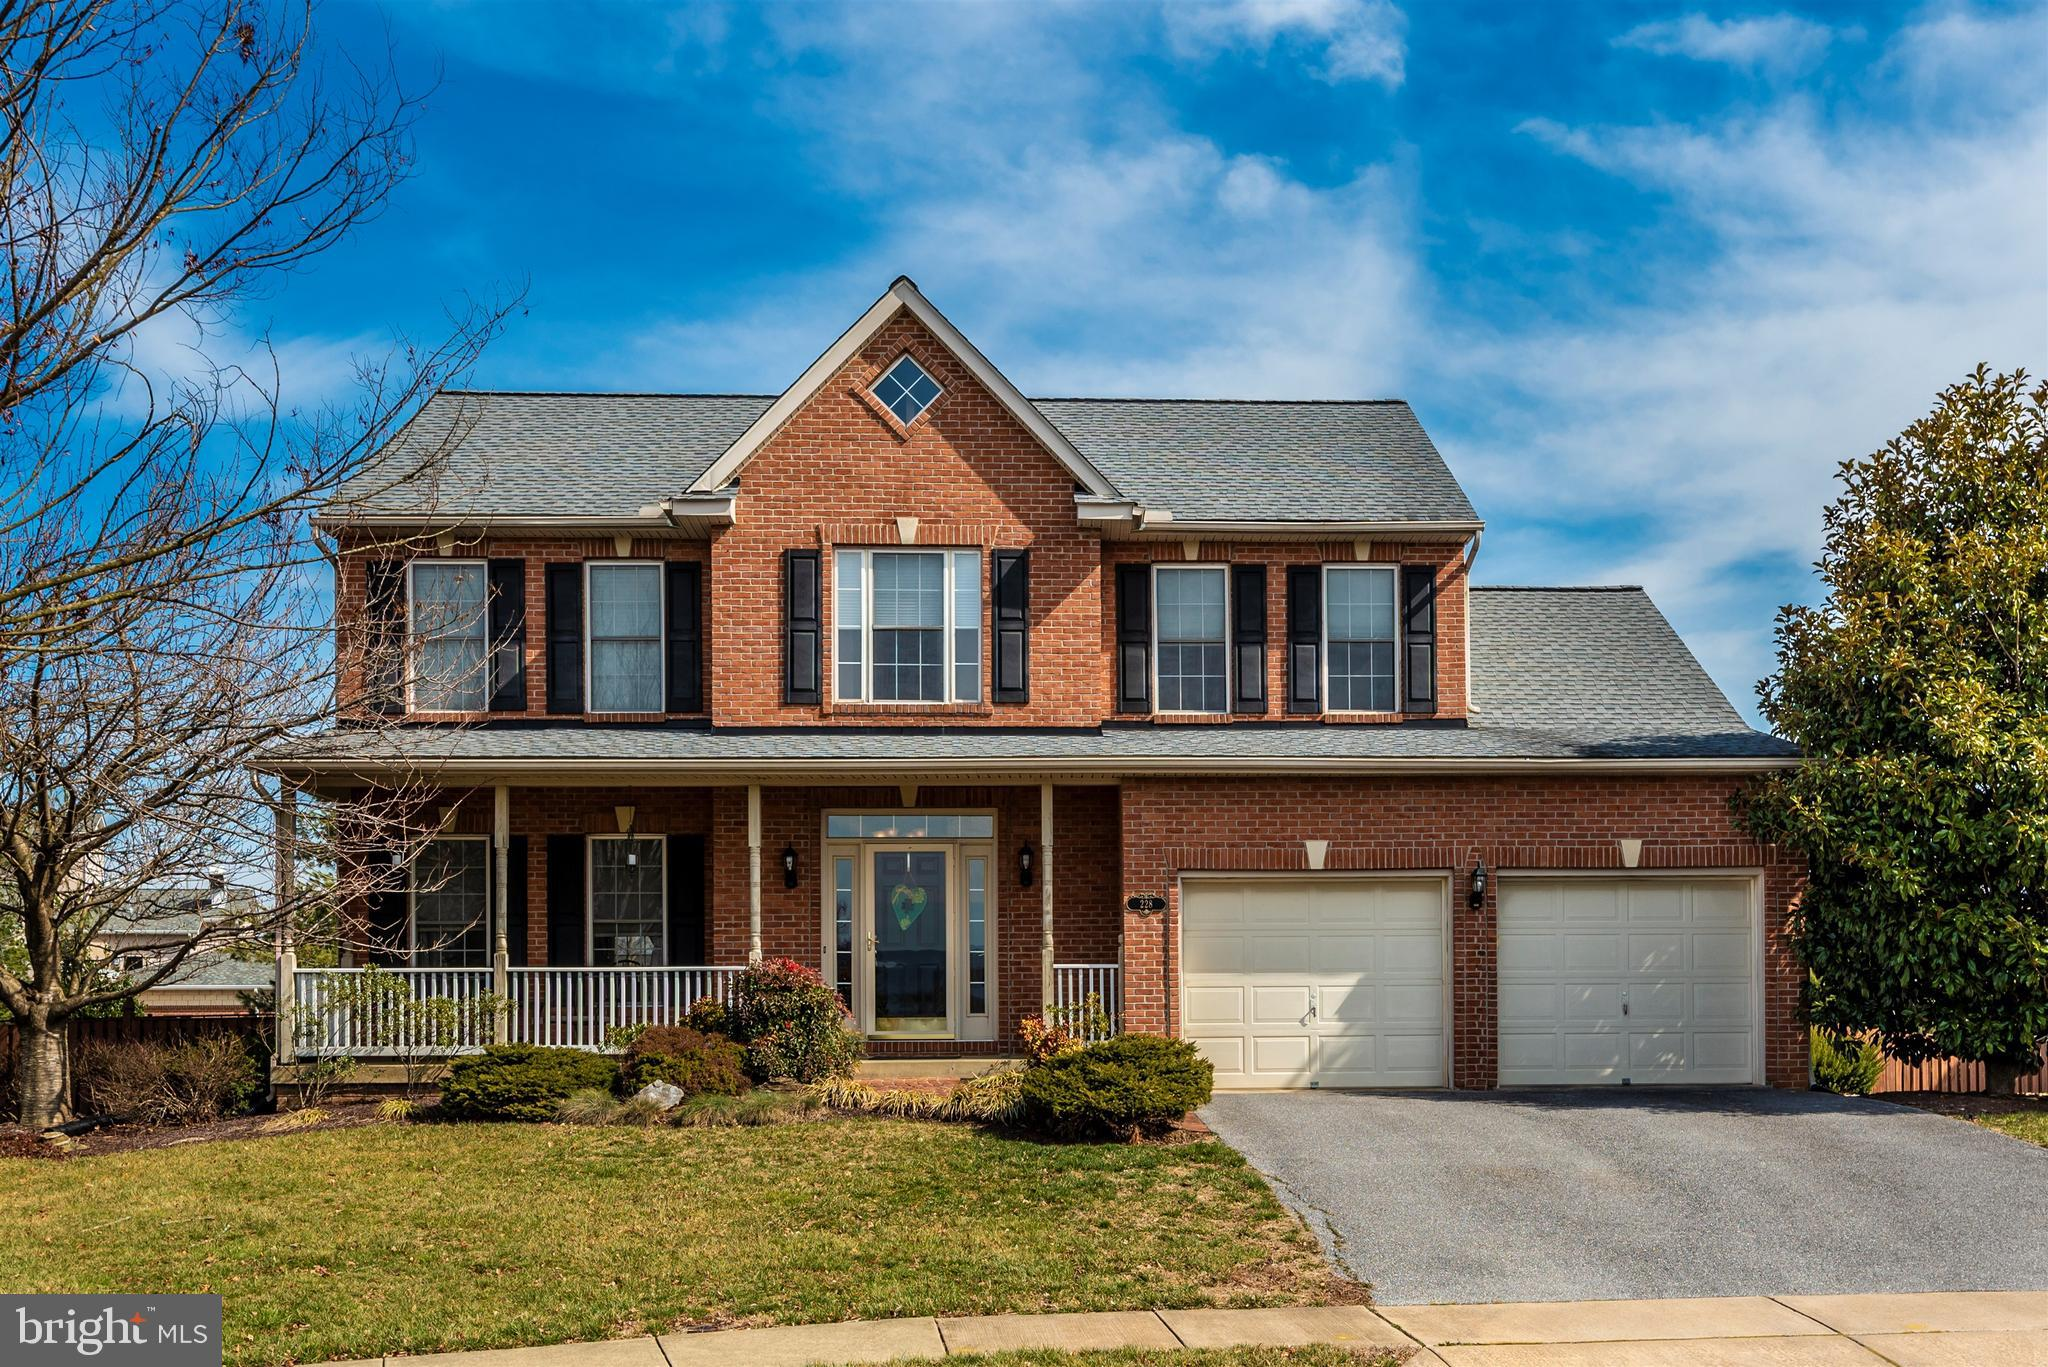 228 CREEK WALK DRIVE, WALKERSVILLE, MD 21793